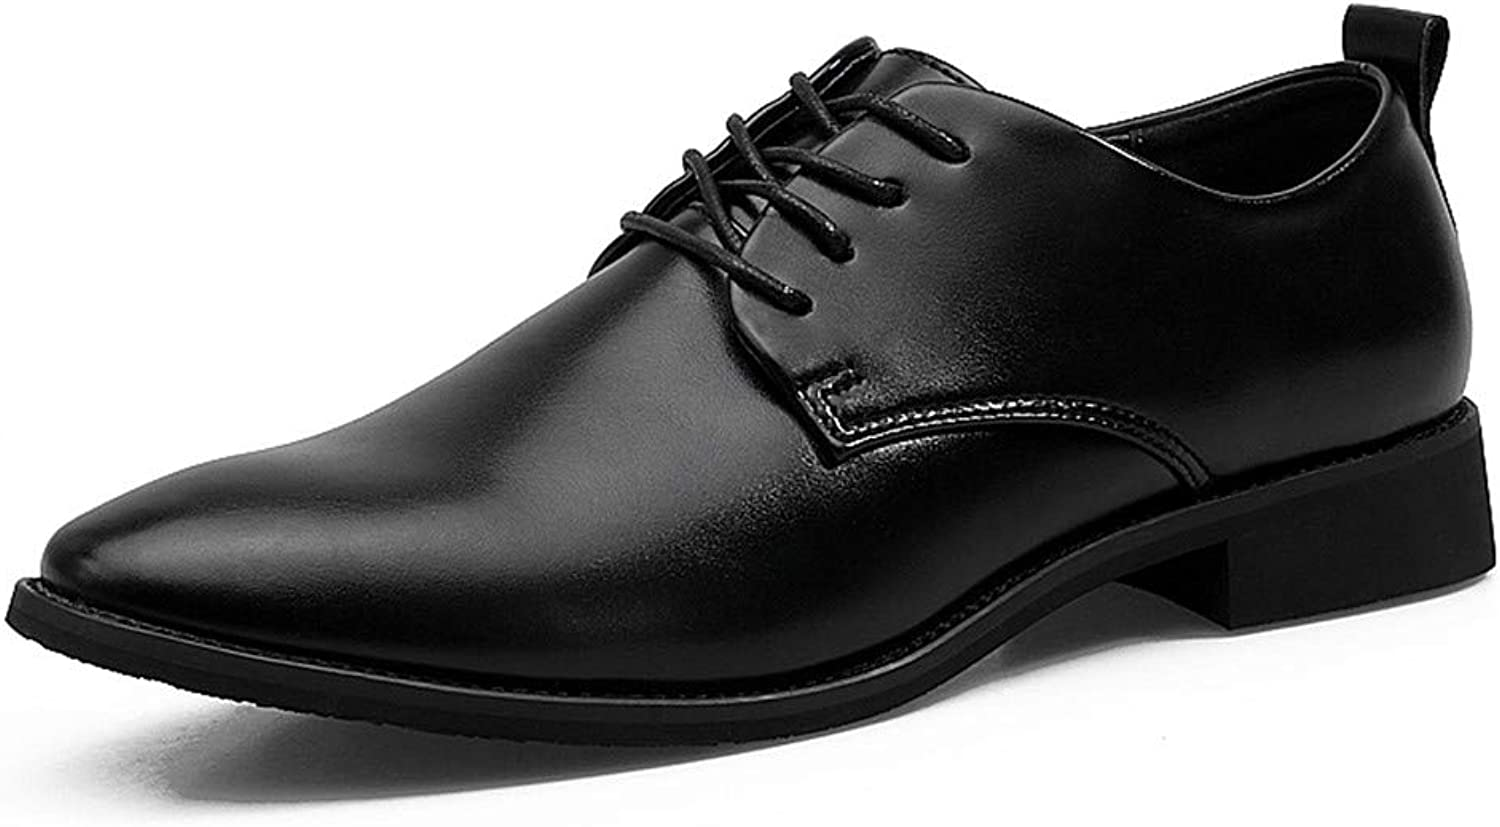 SCSY-Oxford shoes Men's Simple Business Oxford Casual Soft Leather Pointed Lace Classic Fashion Formal shoes